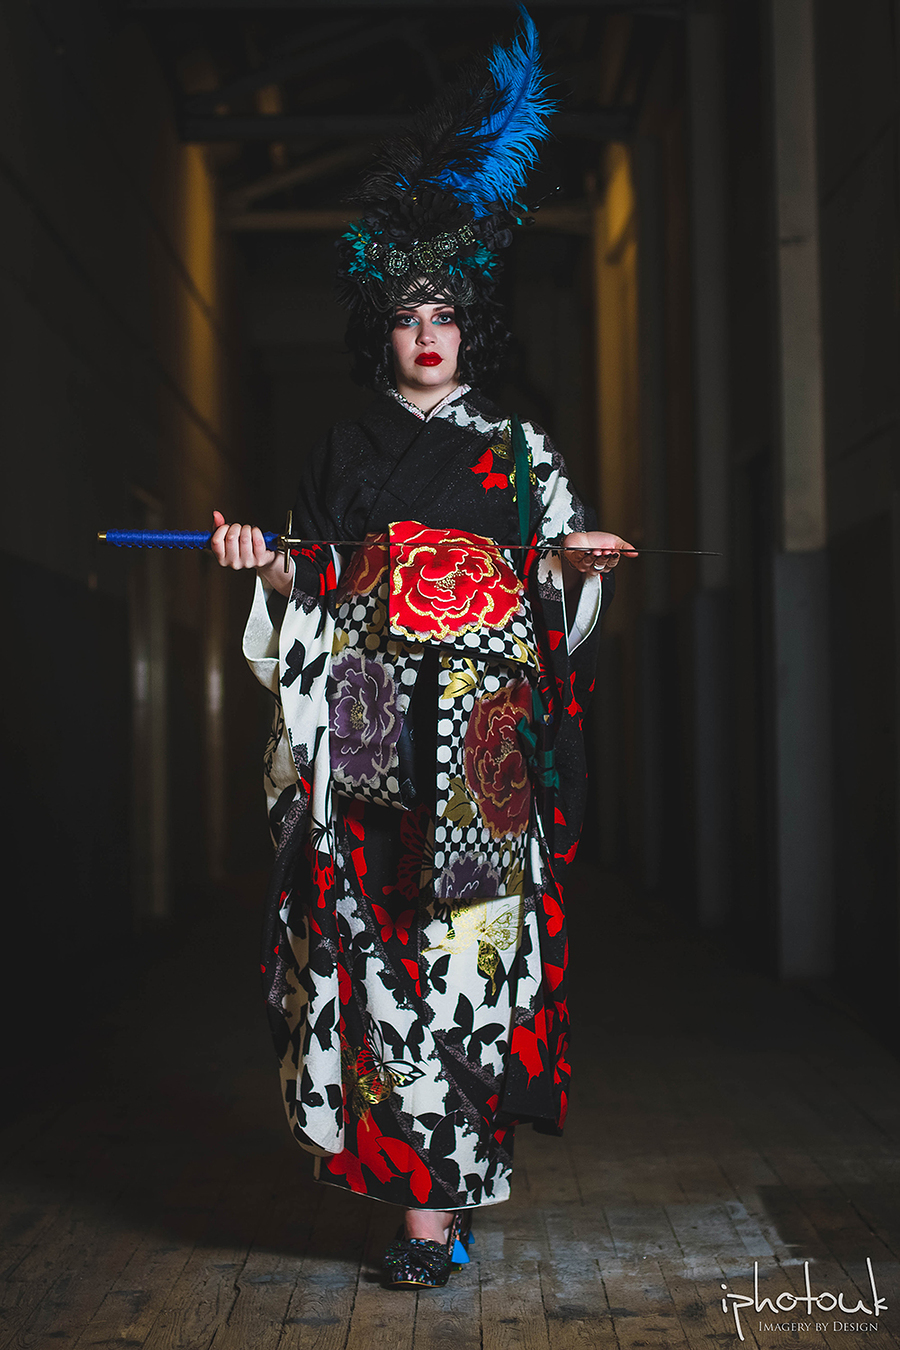 Do you want this? / Photography by Iphotouk, Stylist Kimono Stylist, Taken at SS Creative Photography, Designer Kimono Stylist / Uploaded 10th February 2017 @ 08:15 AM